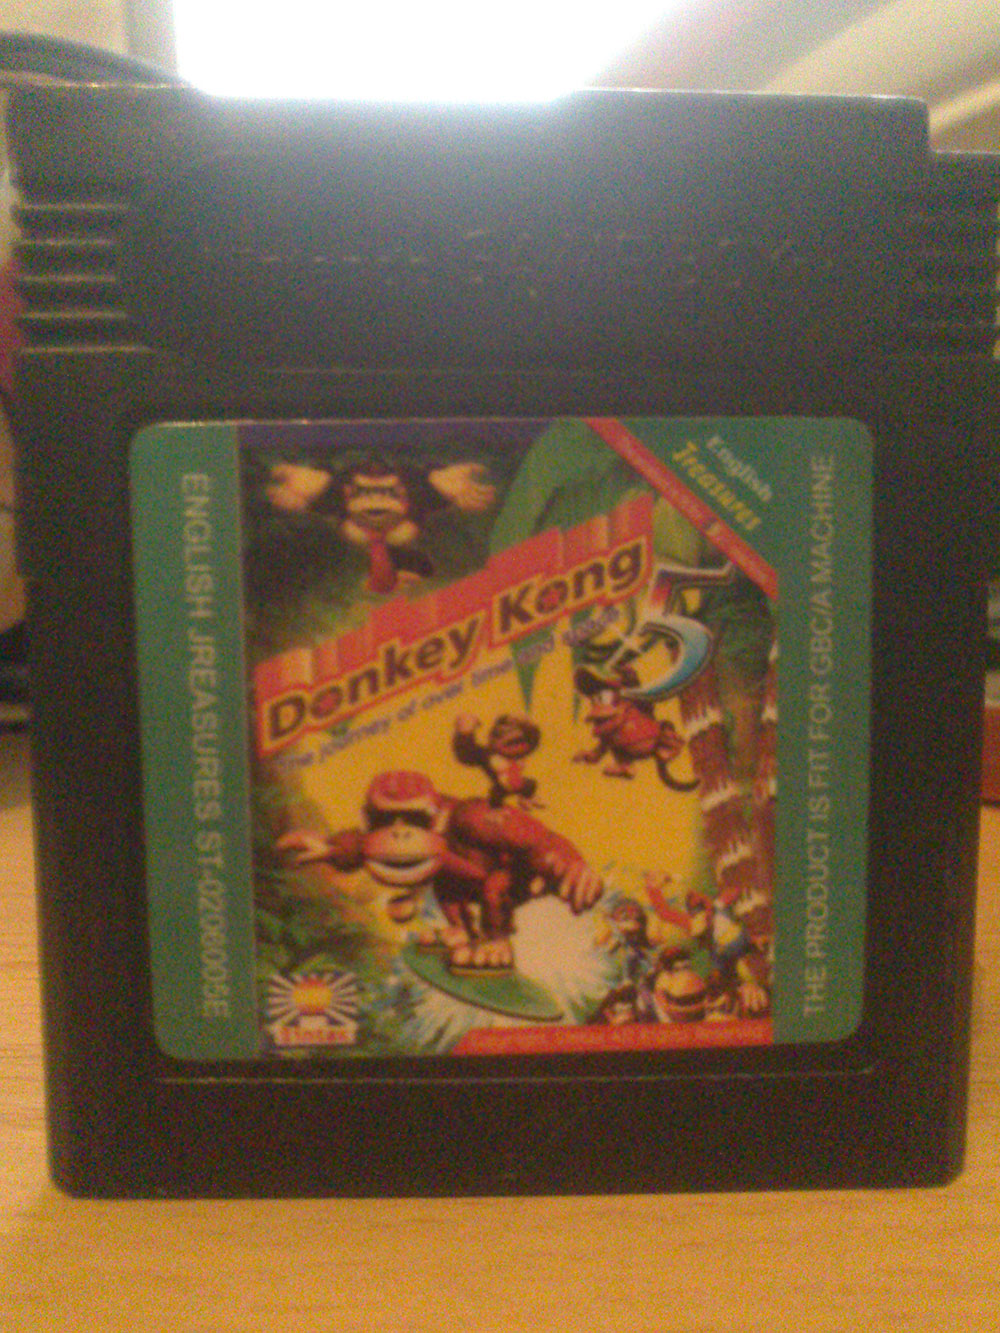 Donkey Kong 5: The Journey of Over Time and Space | BootlegGames